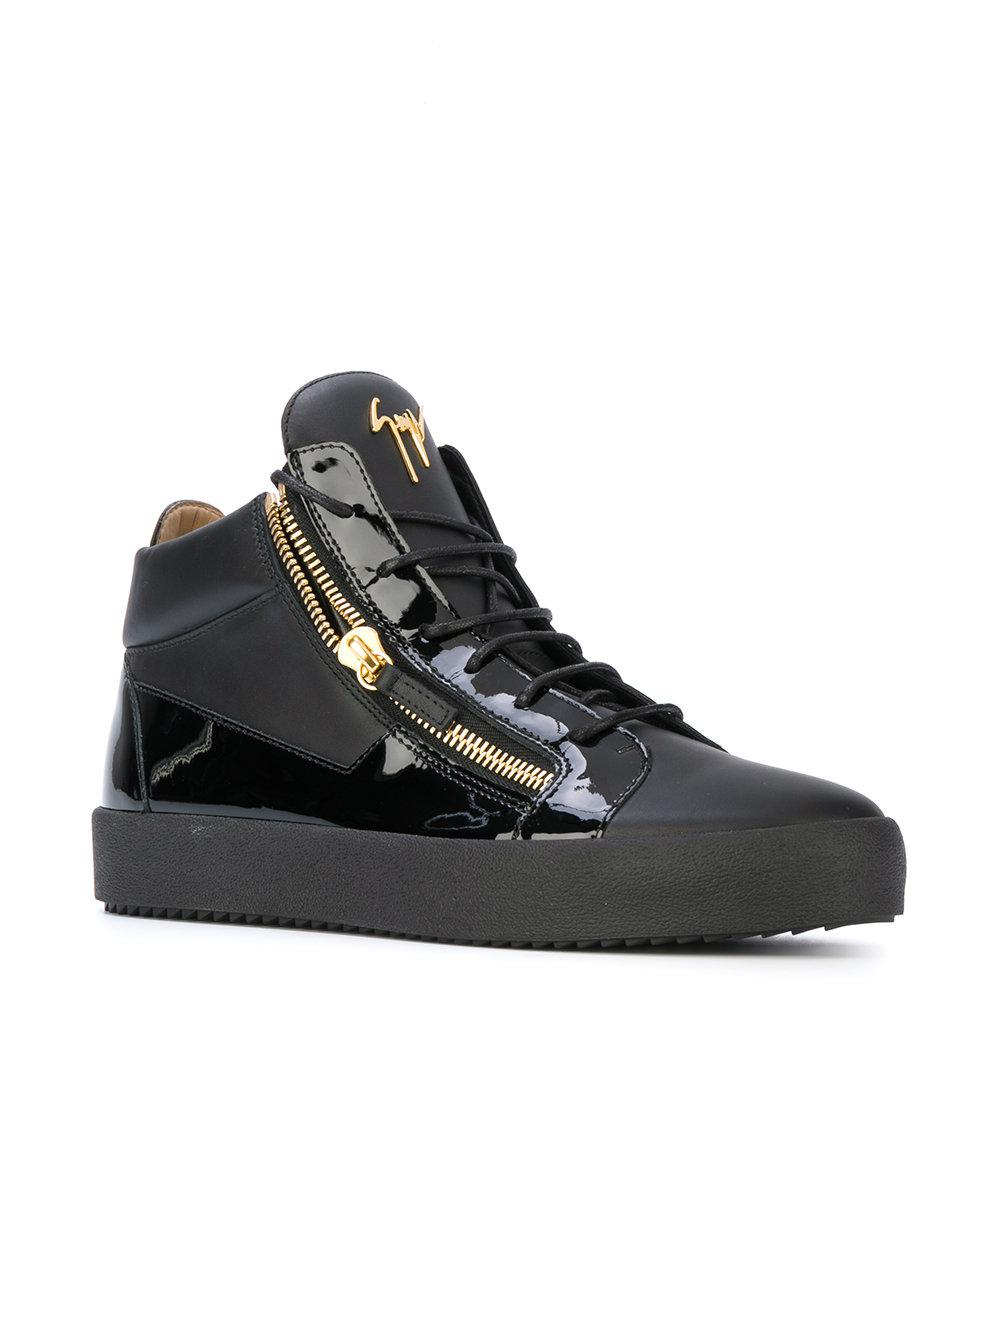 bdb06dbb8782 Lyst - Giuseppe Zanotti Black Micro-studded Leather  may London  High-top  Sneakers in Black for Men - Save 50%